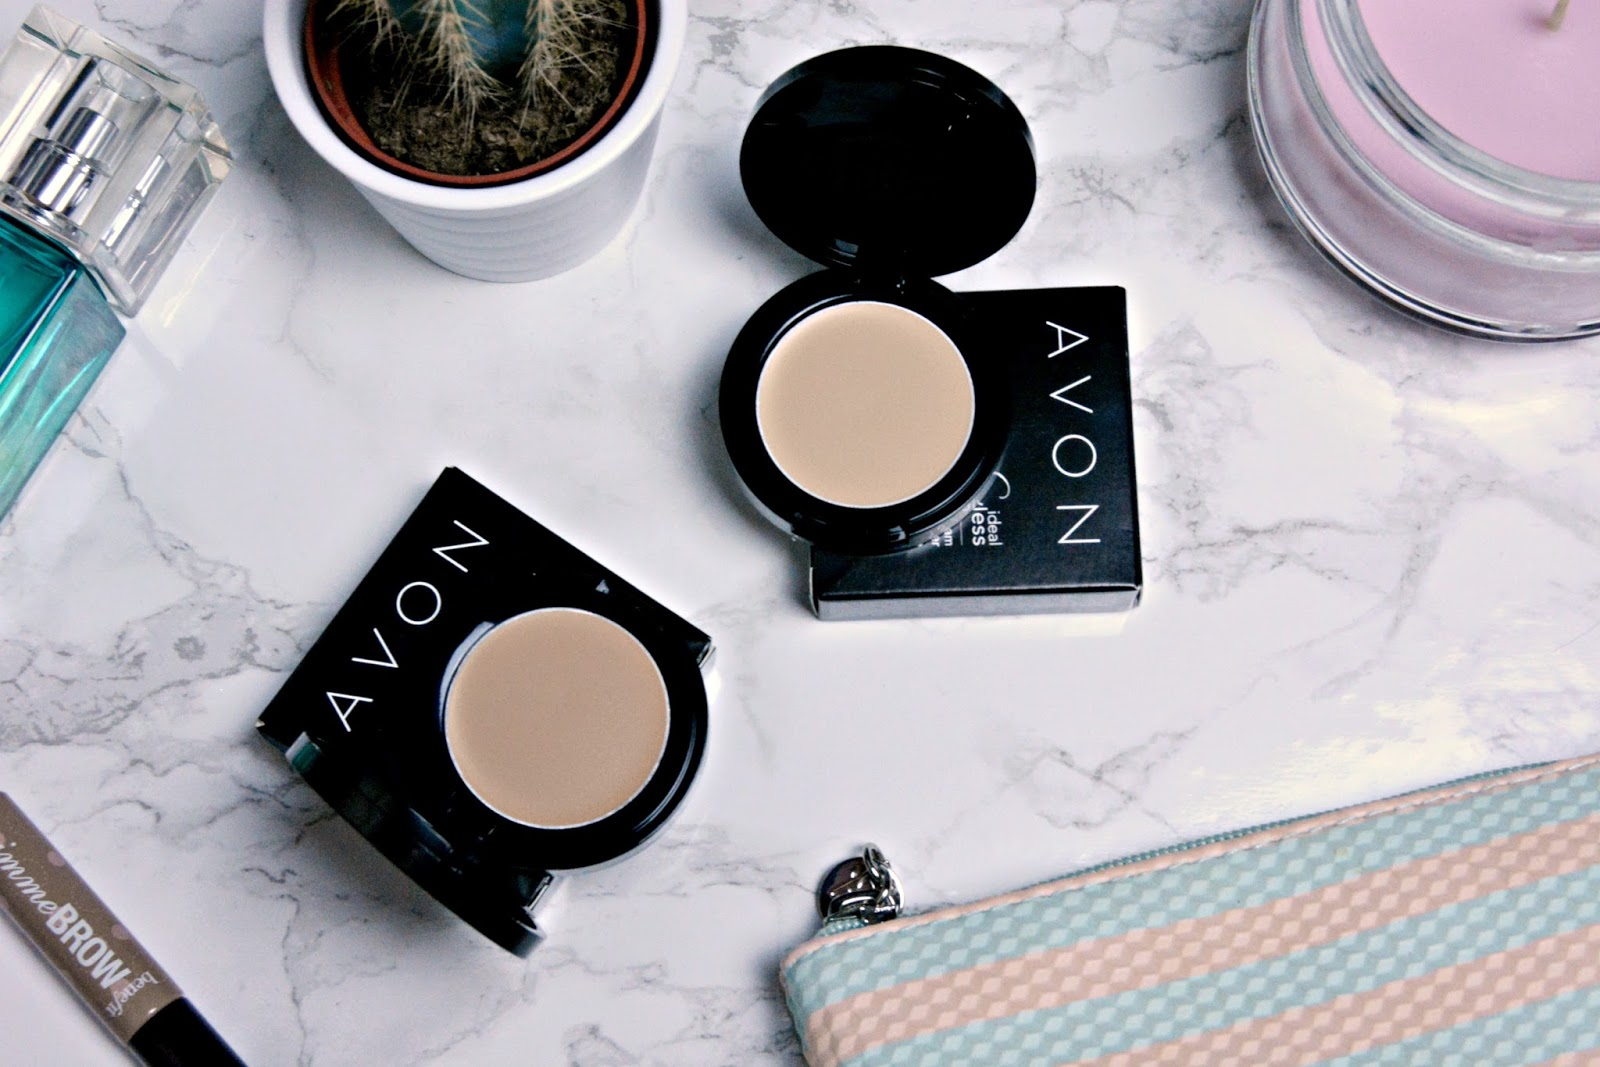 cream, concealer, avon, make up, beauty, cosmetics, review, pr request, contouring